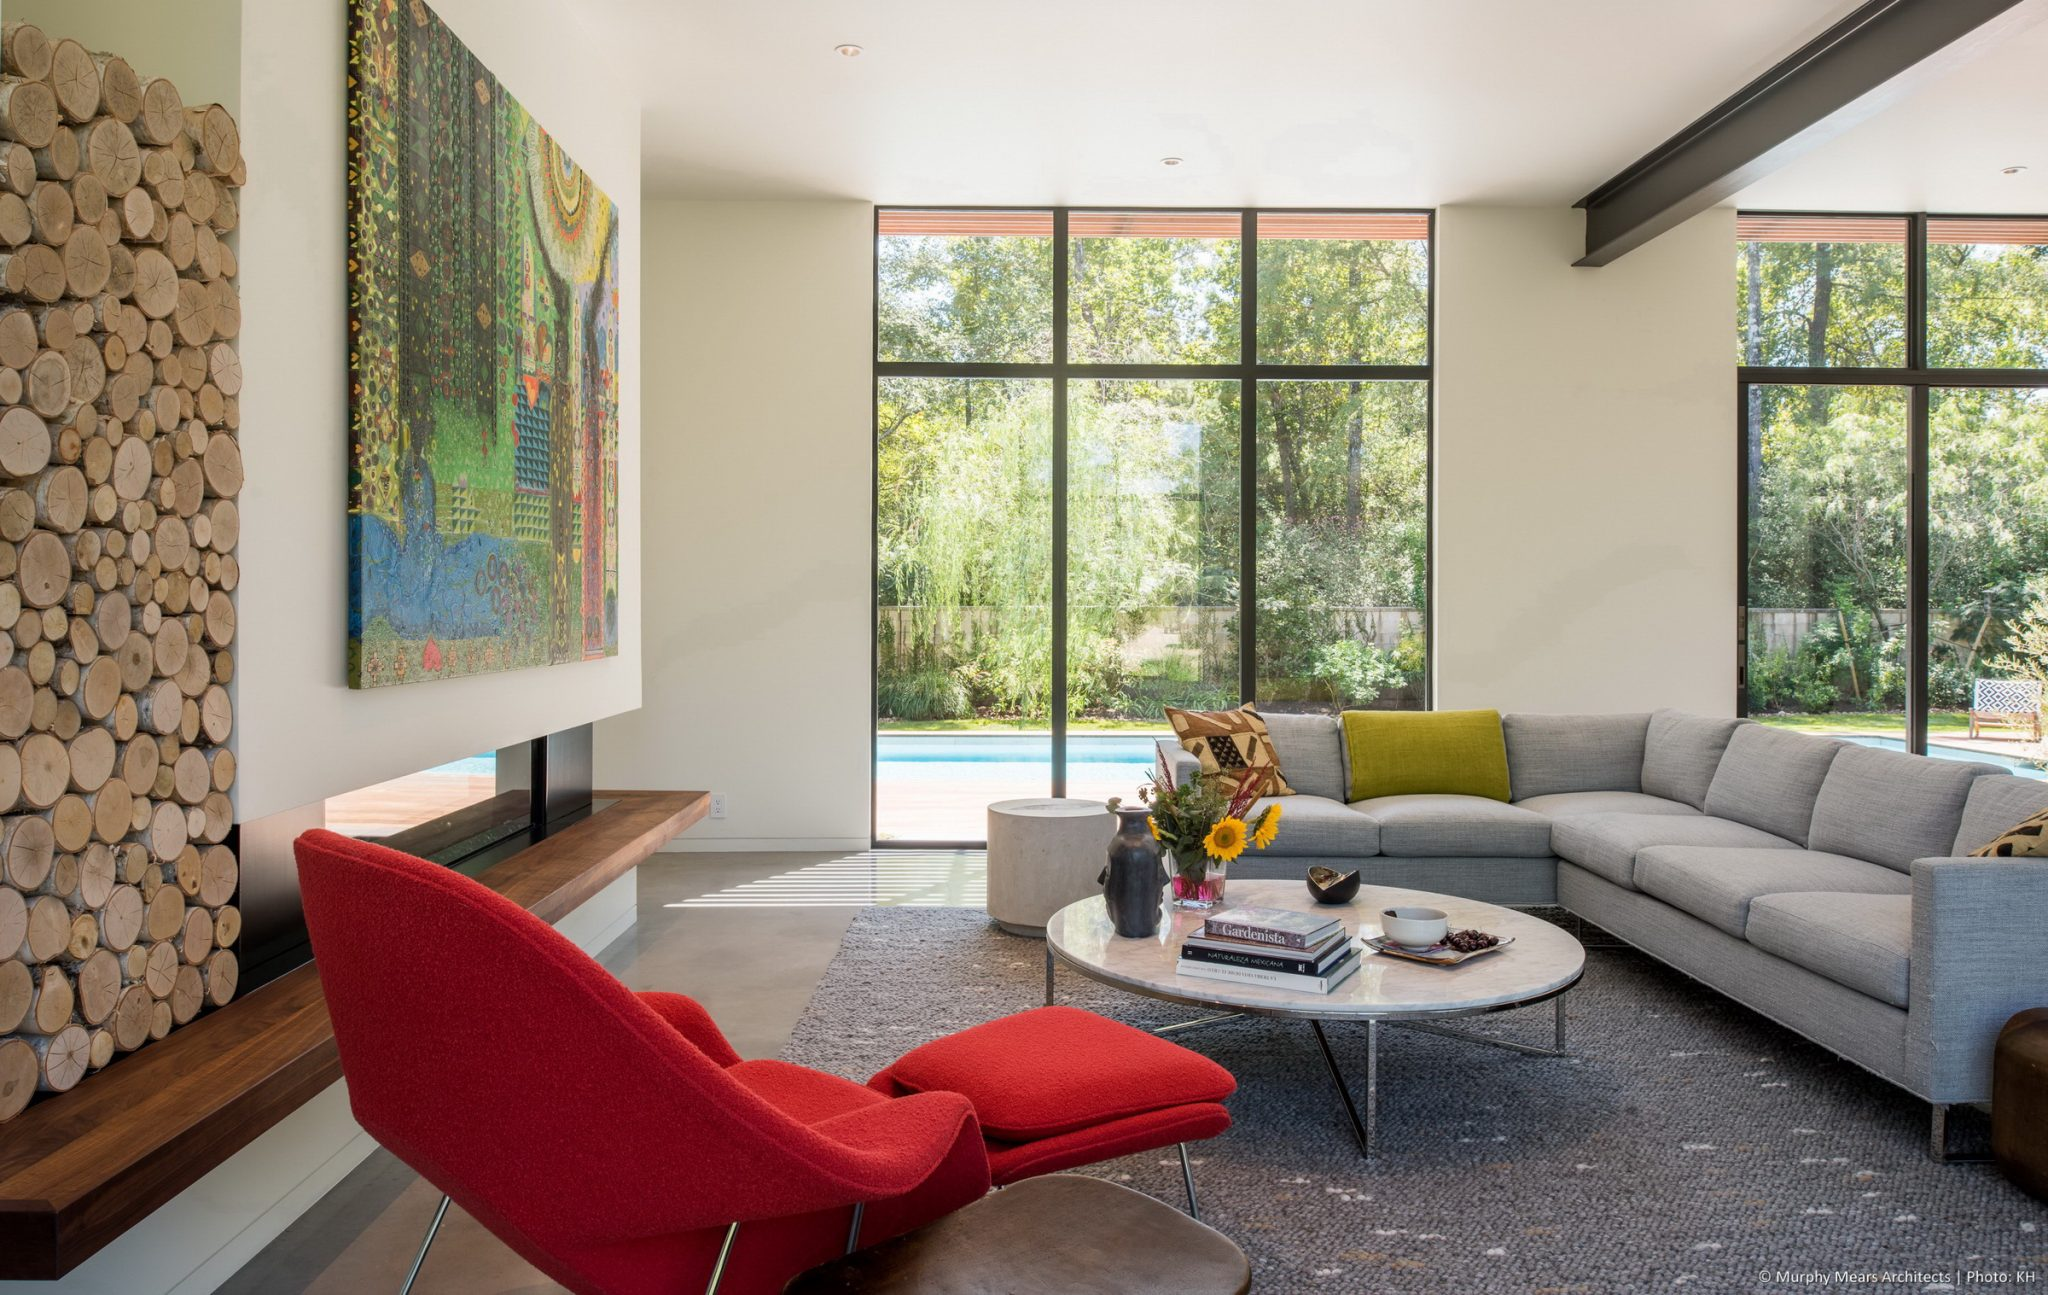 Carlton Woods Residence - A structural steel beam provides a line of separation between living and dining spaces in the open first floor plan.